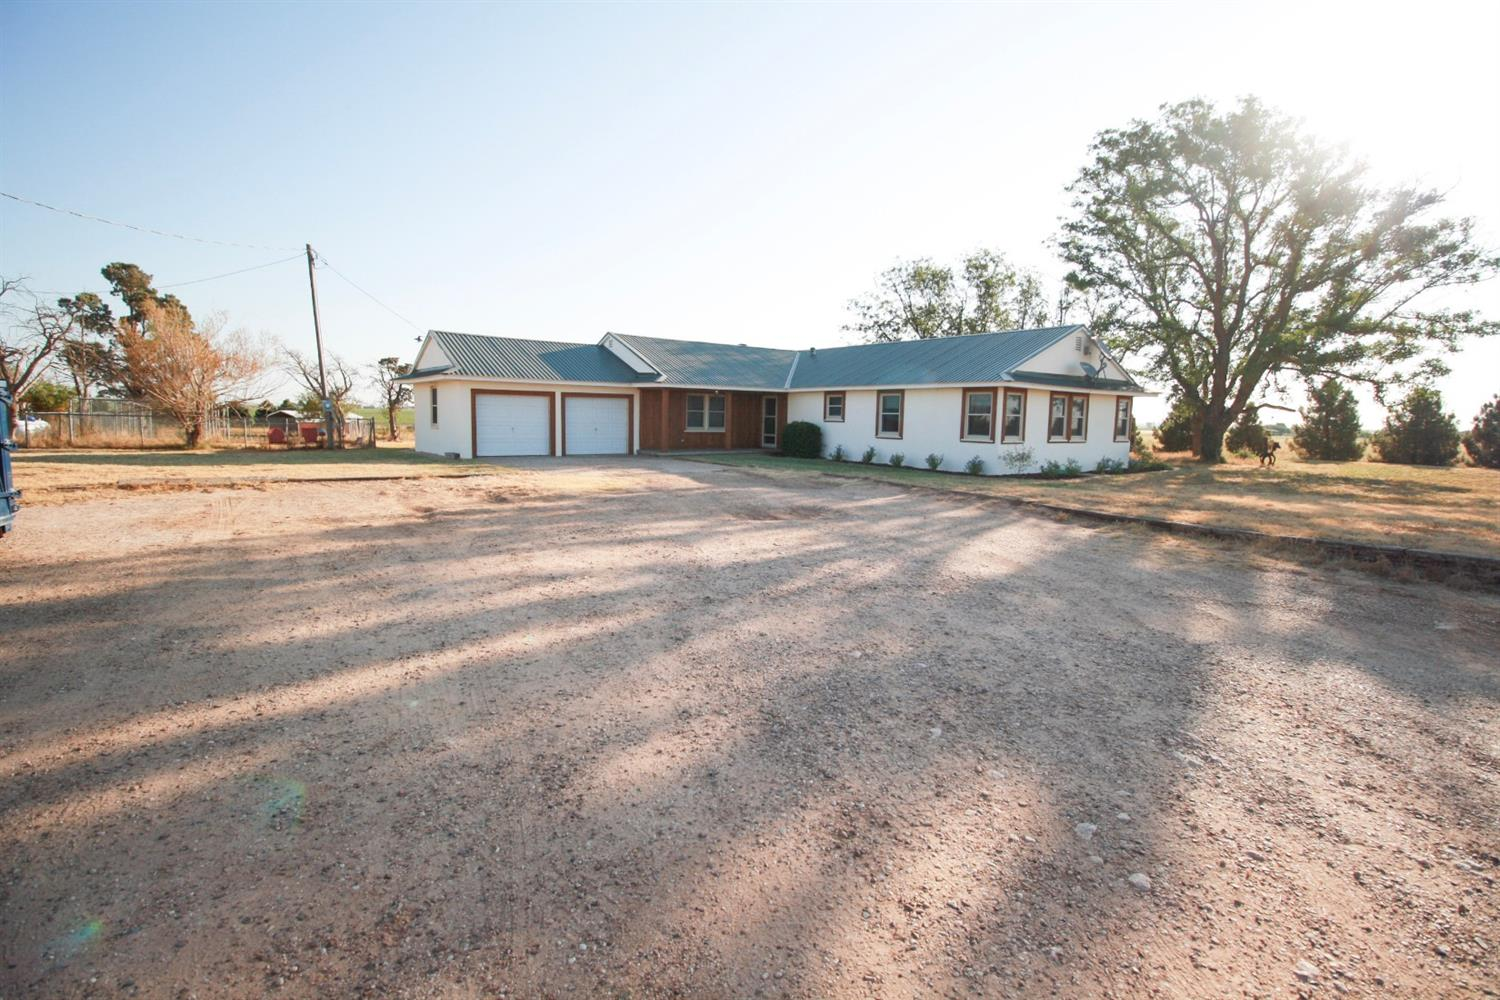 Adorable farmhouse on 11.9 acres in Lubbock Cooper School District!  4/2/2 with updated master bath, guest bath, kitchen counter-tops, tile back-splash, sink, new dishwasher, metal roof, hardwood floors just refinished, double pane windows, well pump & bladder replaced 4/19 & AC unit was replaced in 2016.  2 barns for stock-show animals & livestock.  All of the pens & panels will convey!  A little piece of paradise...You have to see for yourself, photos just do not do it justice!